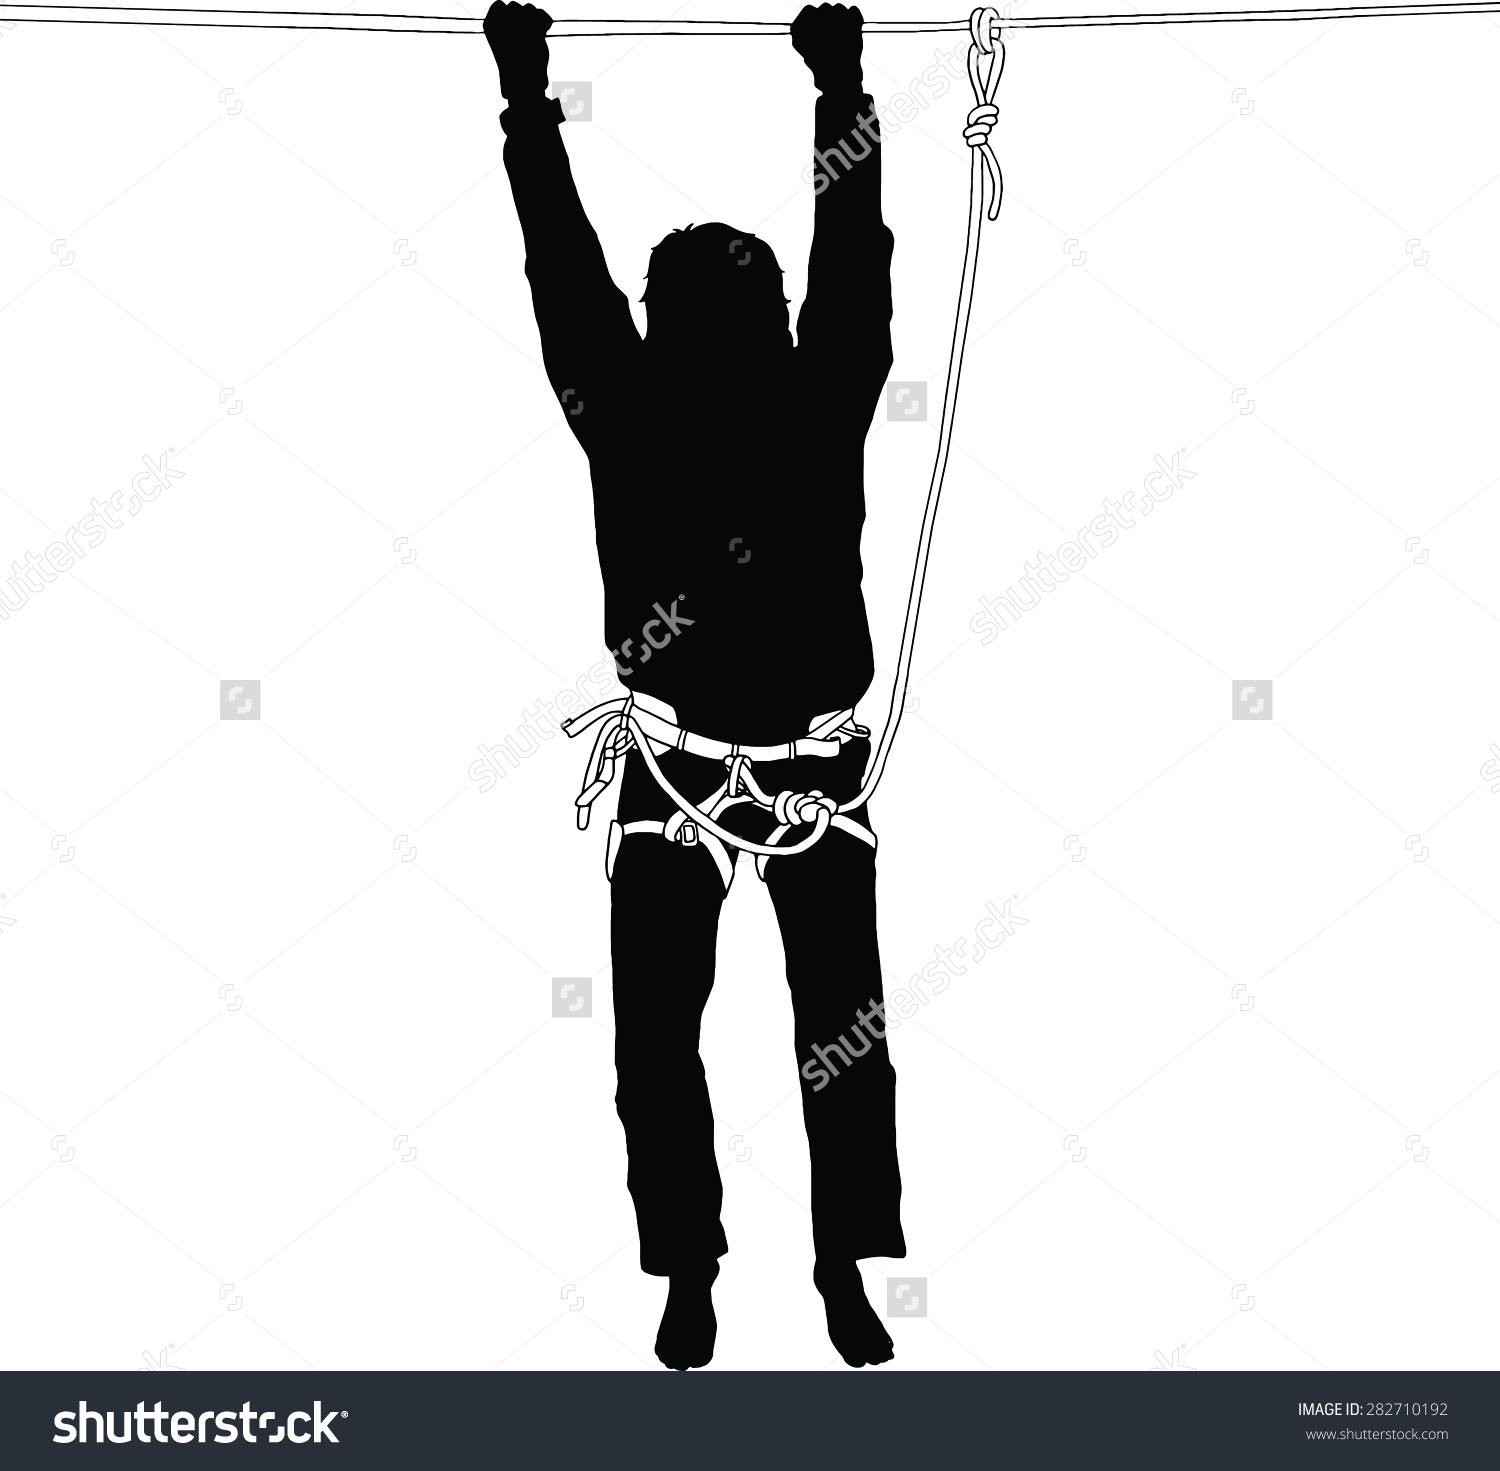 Silhouette Man Hanging On Highline Safety Stock Vector 282710192.